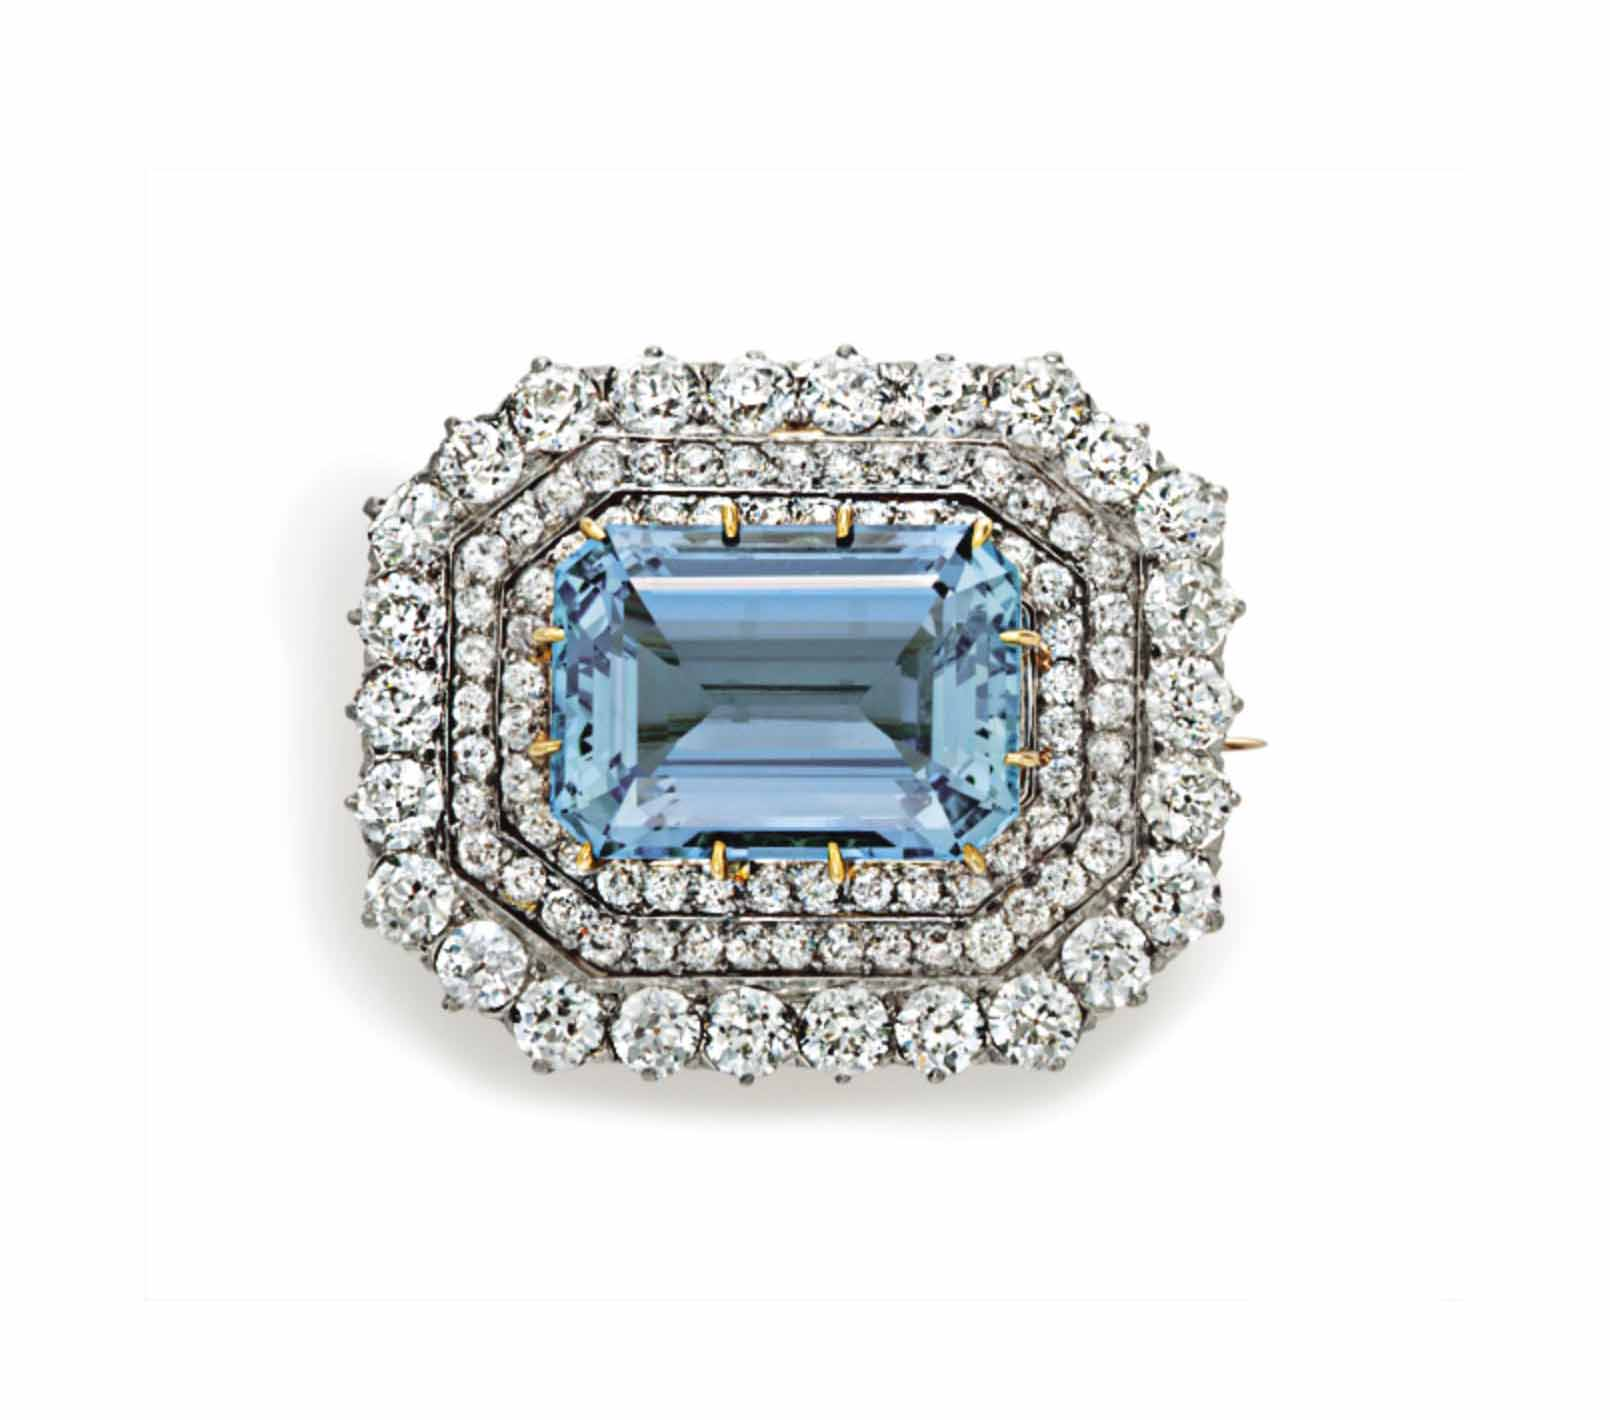 AN ANTIQUE AQUAMARINE AND DIAM